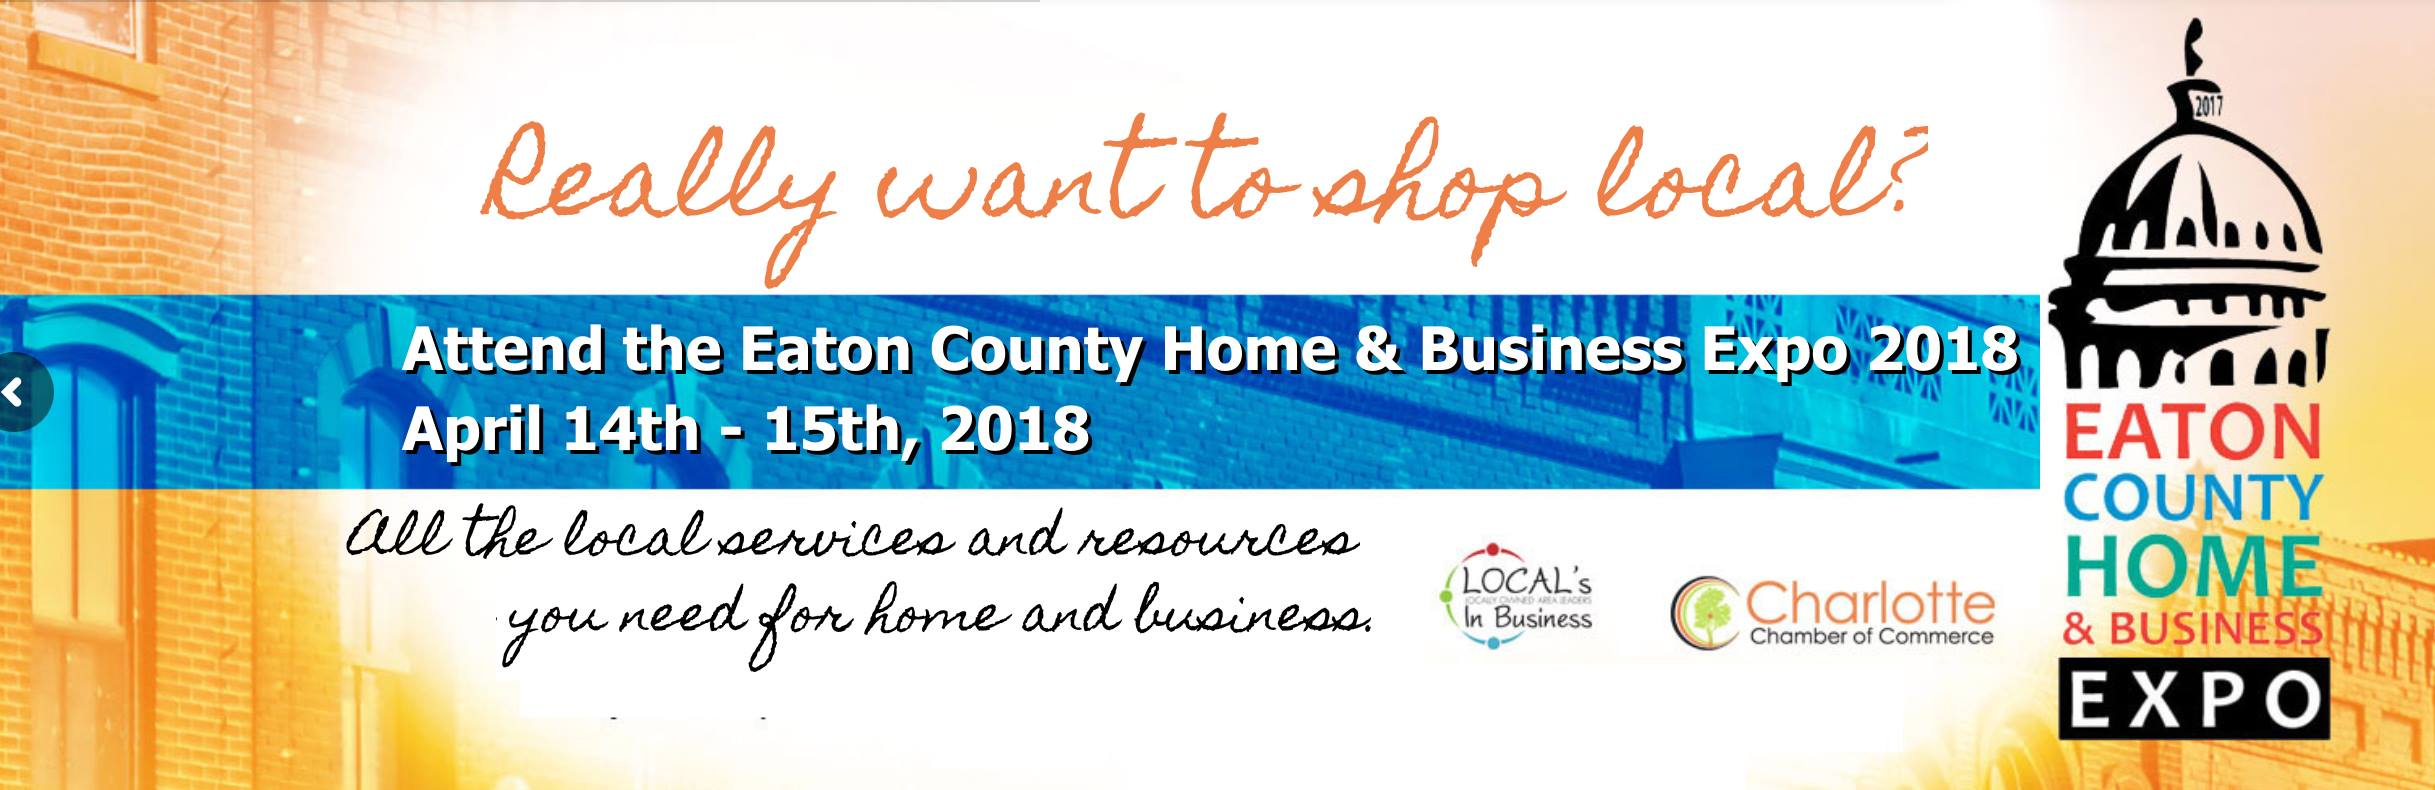 Eaton County Home and Business Expo 2018